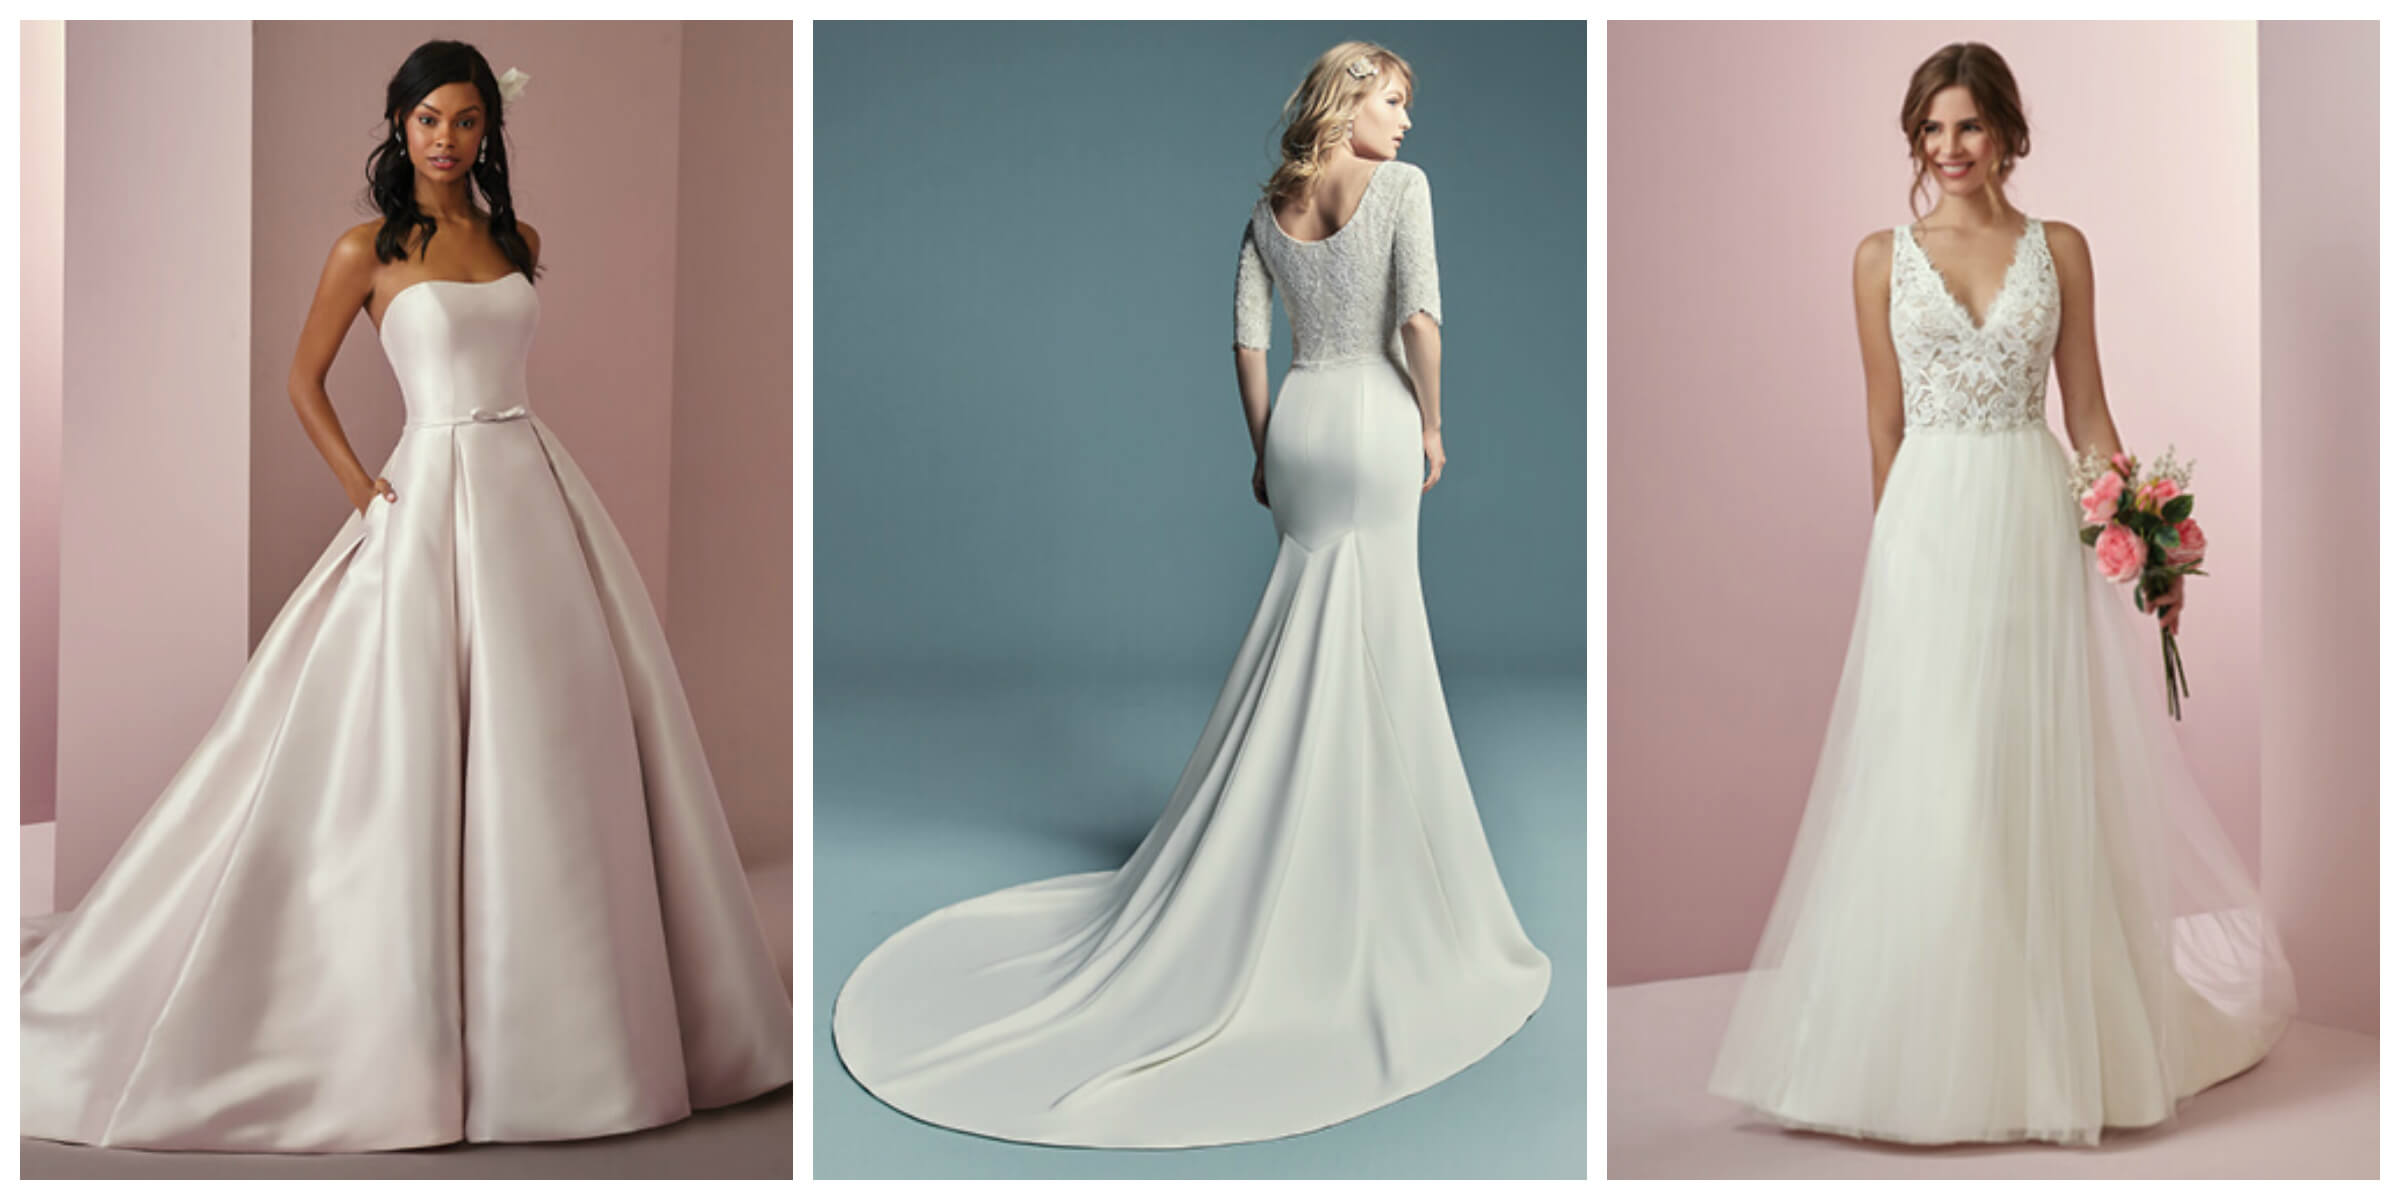 Choosing A Wedding Dress For Your Body Shape - Bridal & Tuxedo